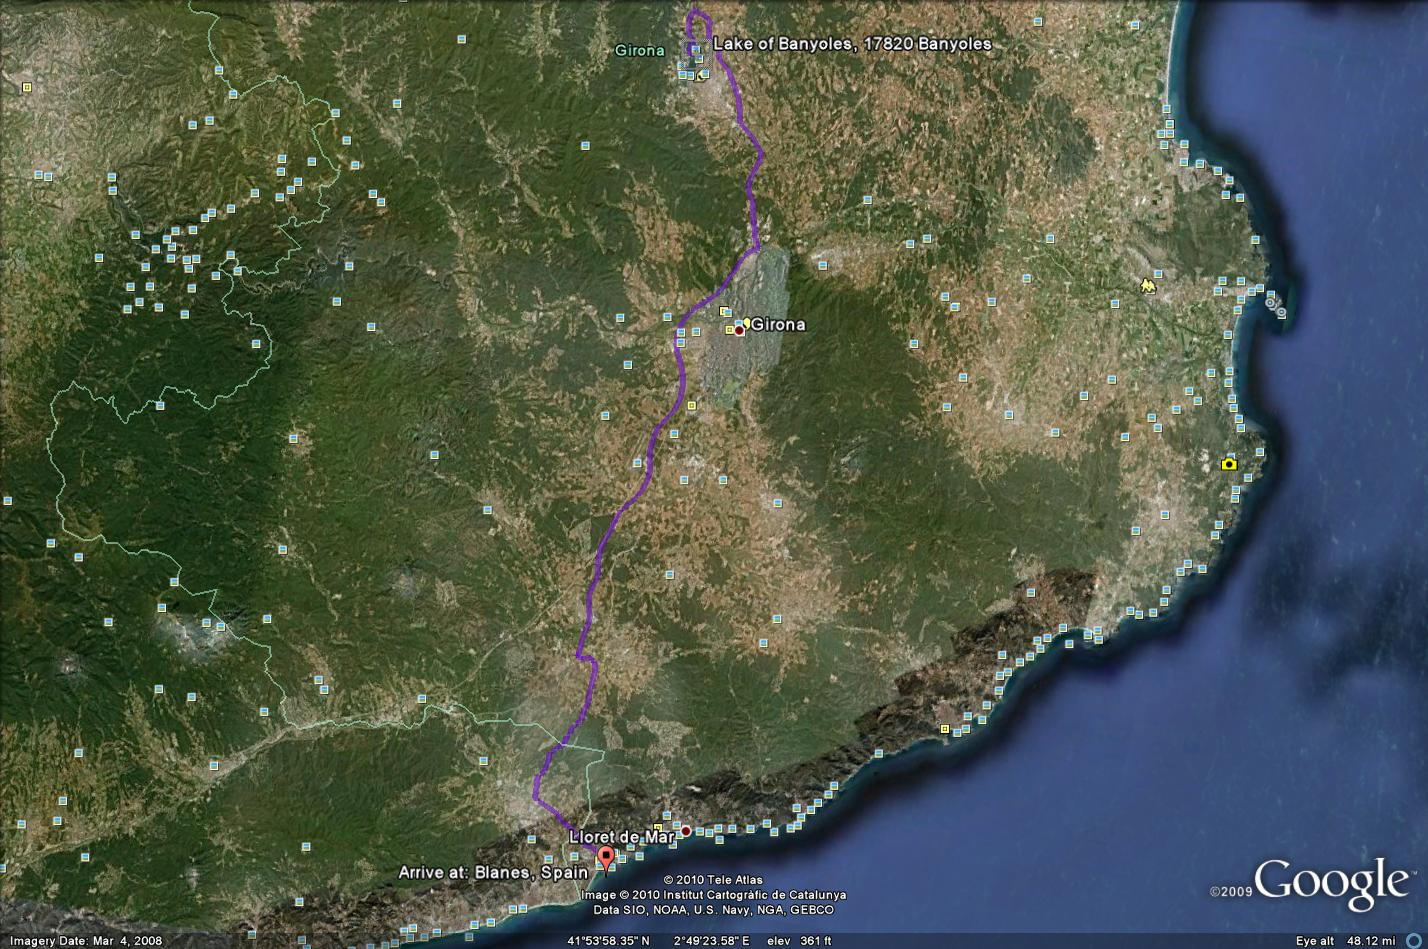 Route from Blanes to Lake Banyoles